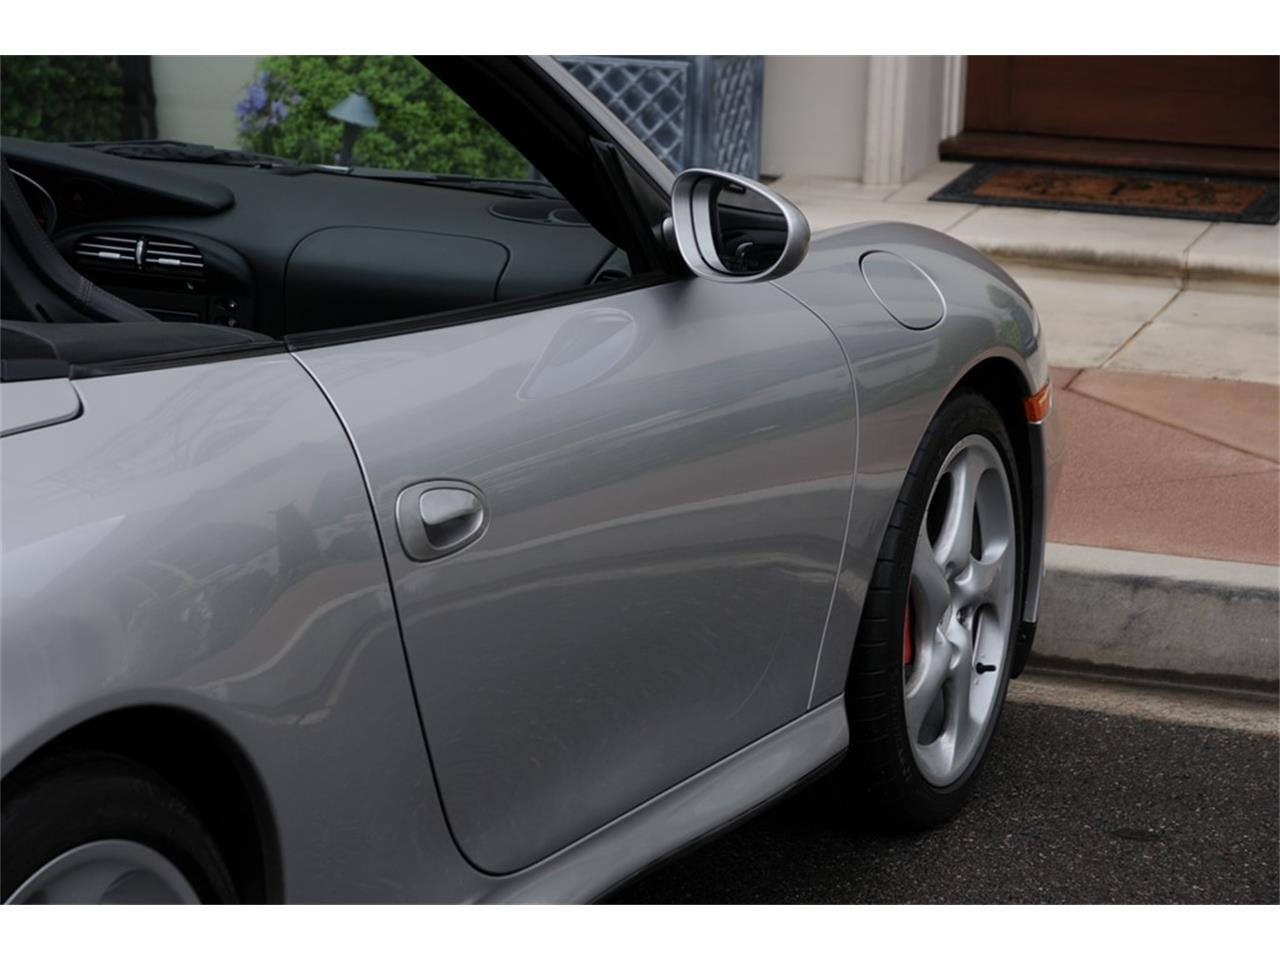 Large Picture of 2004 911 Carrera 4S Cabriolet located in Costa Mesa California Offered by Star European Inc. - QK9K